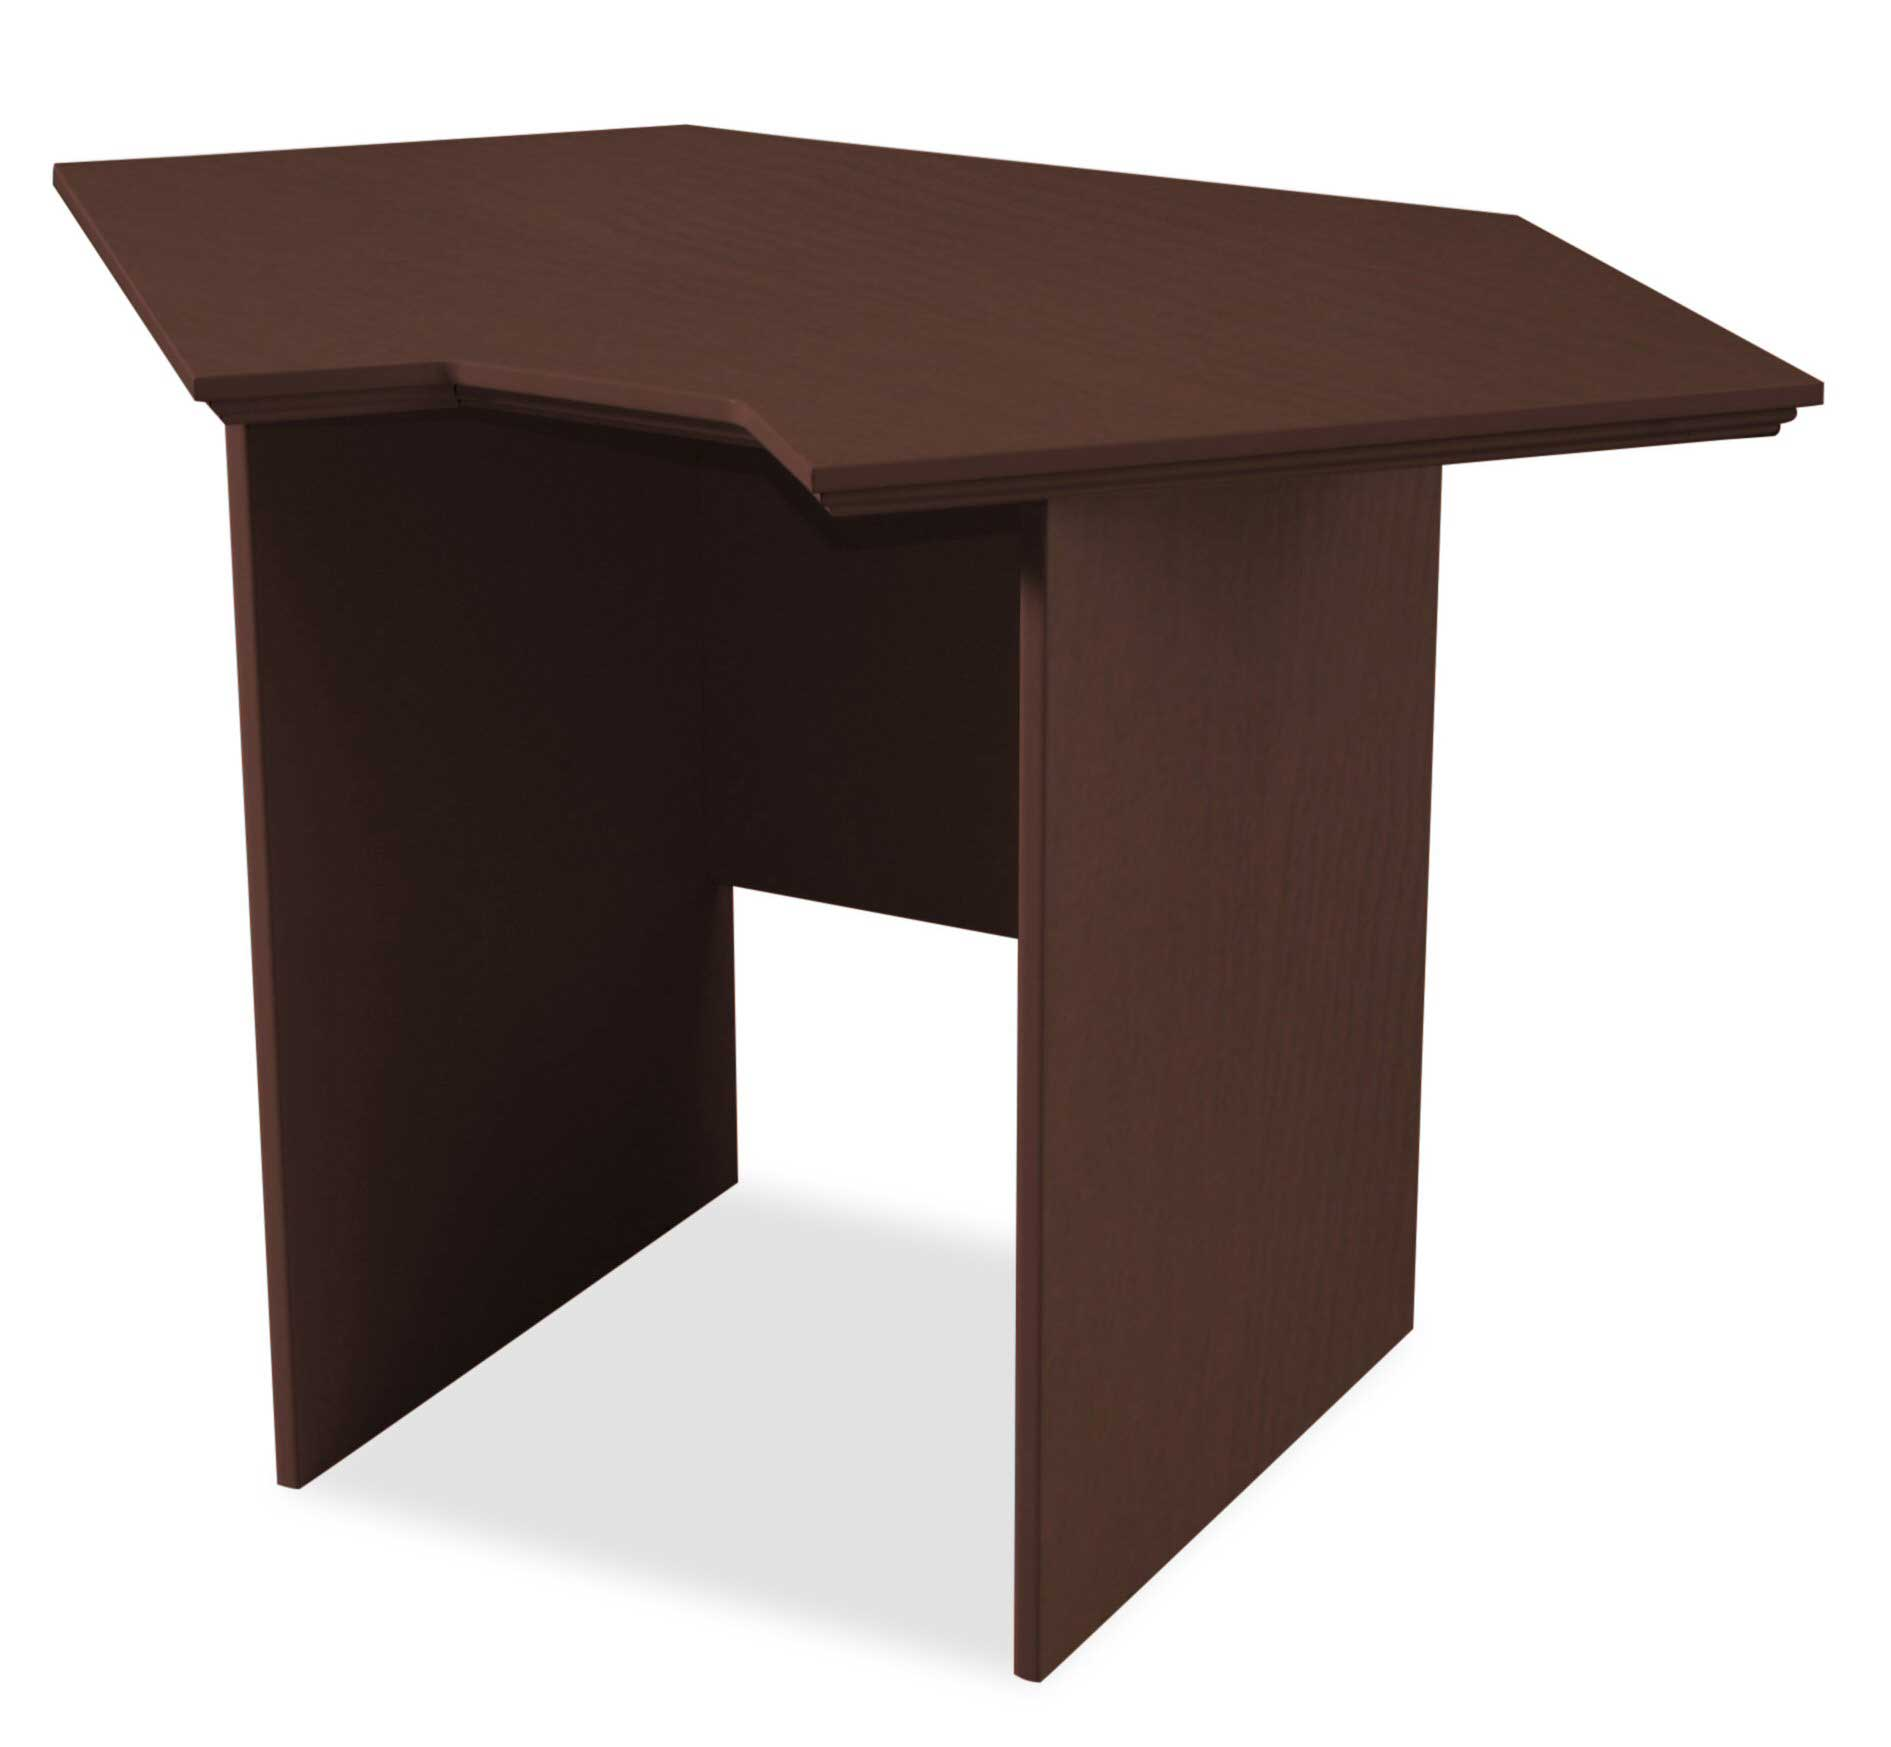 Home office RTA corner studio desk with chocolate finish